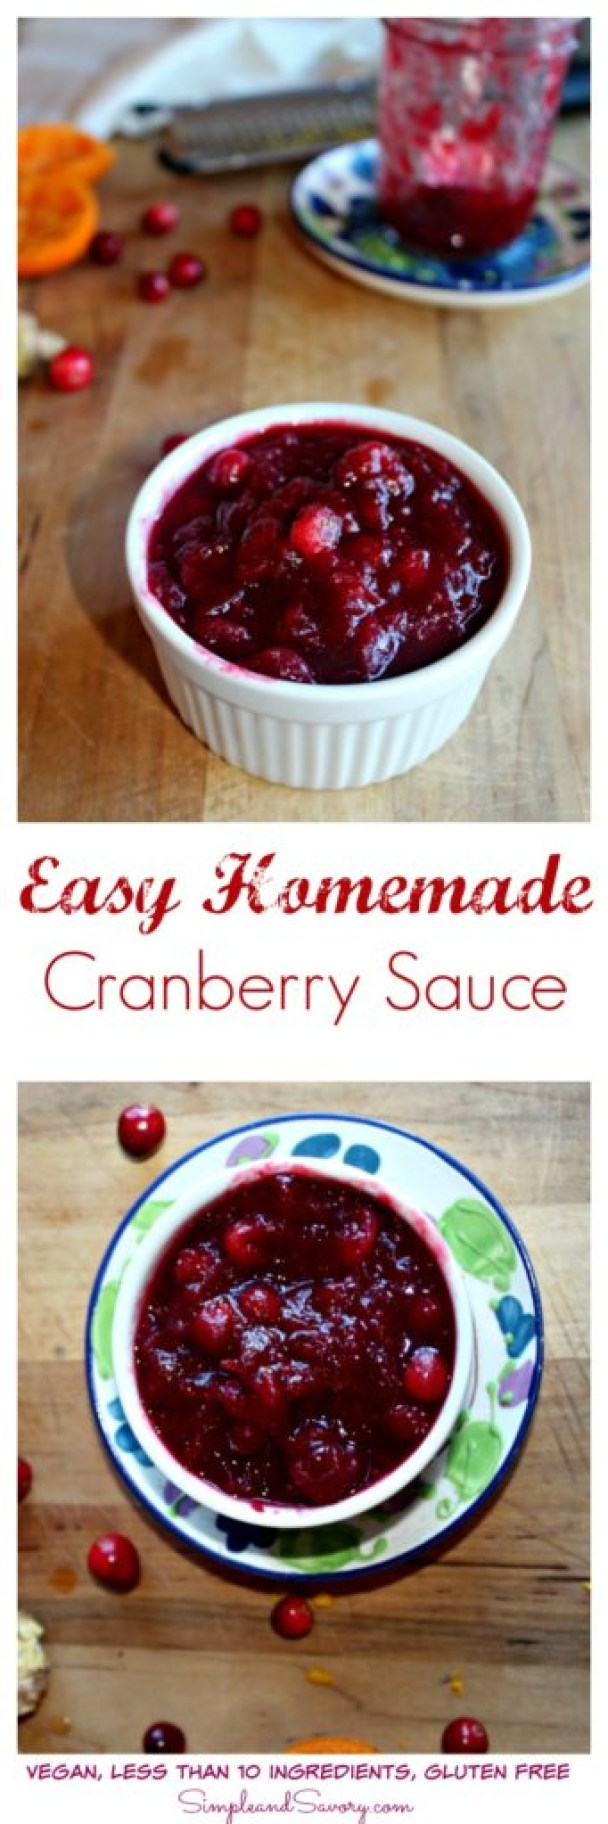 easy-homemade-cranberry-sauce-made-fresh-and-slightly-sweet-and-tart